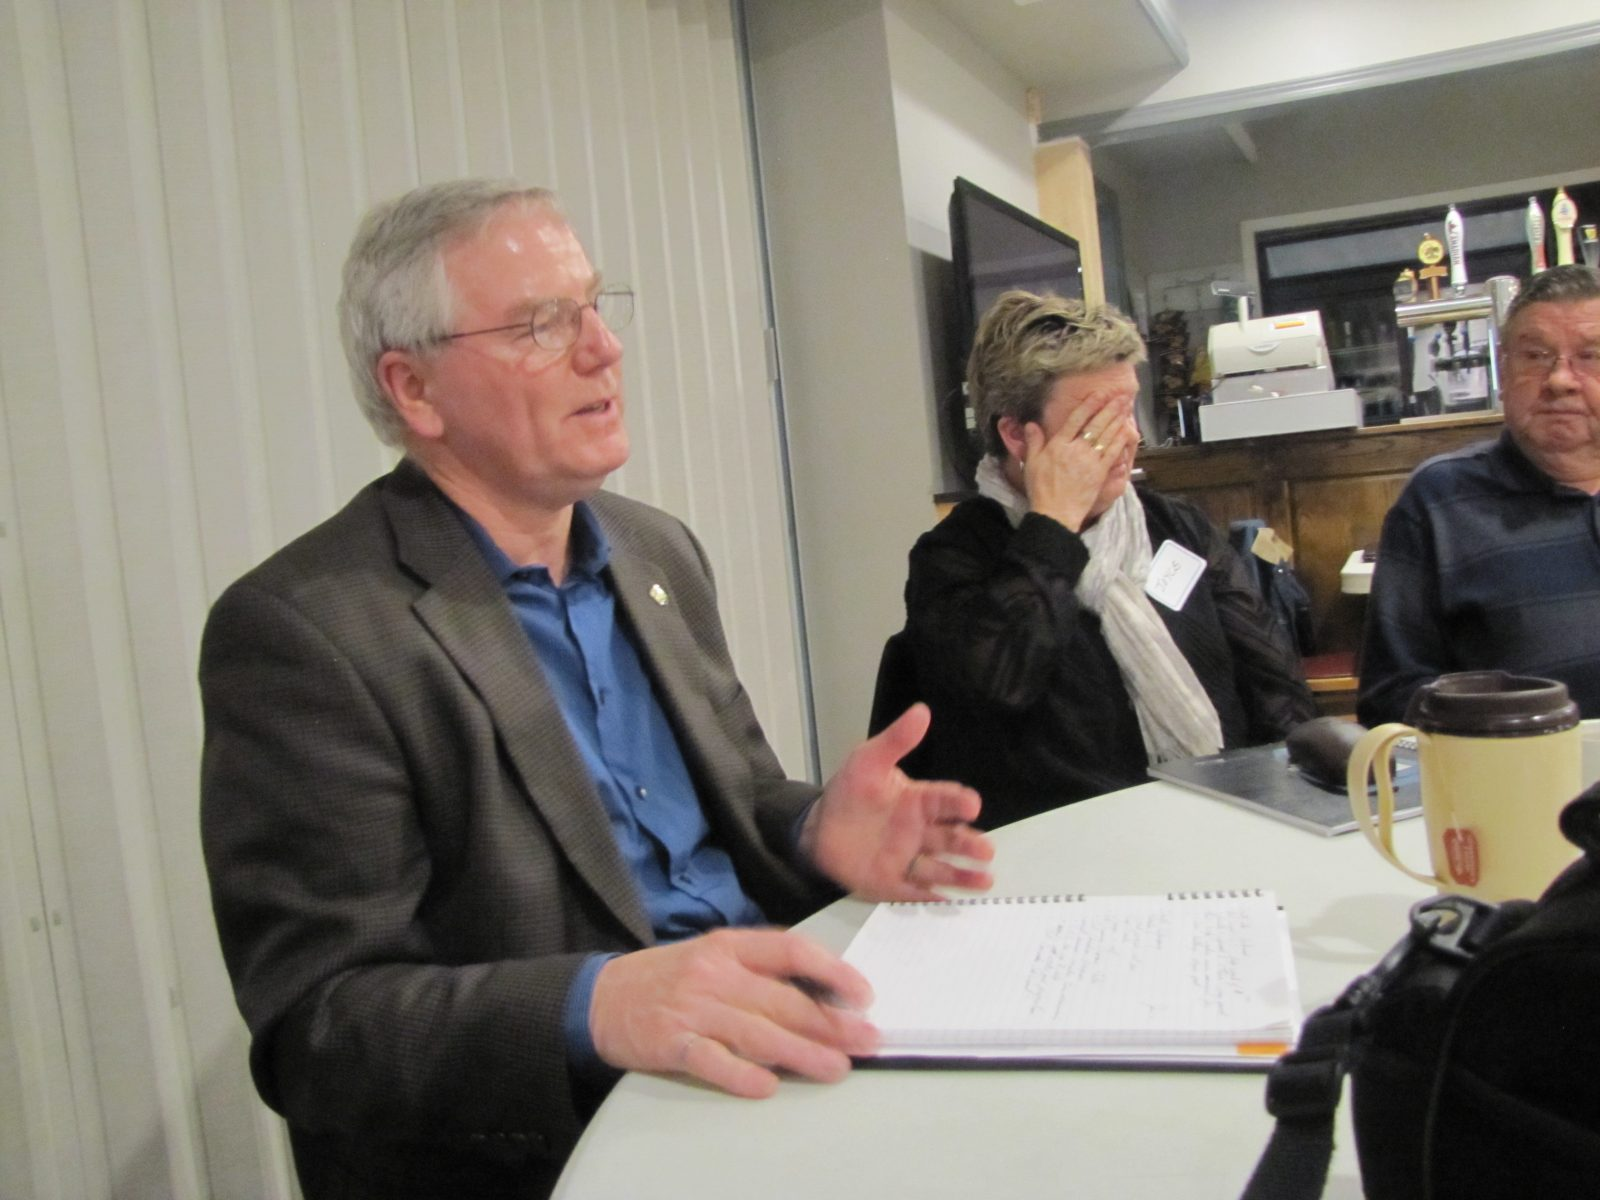 MPP hears budget concerns in SD&G